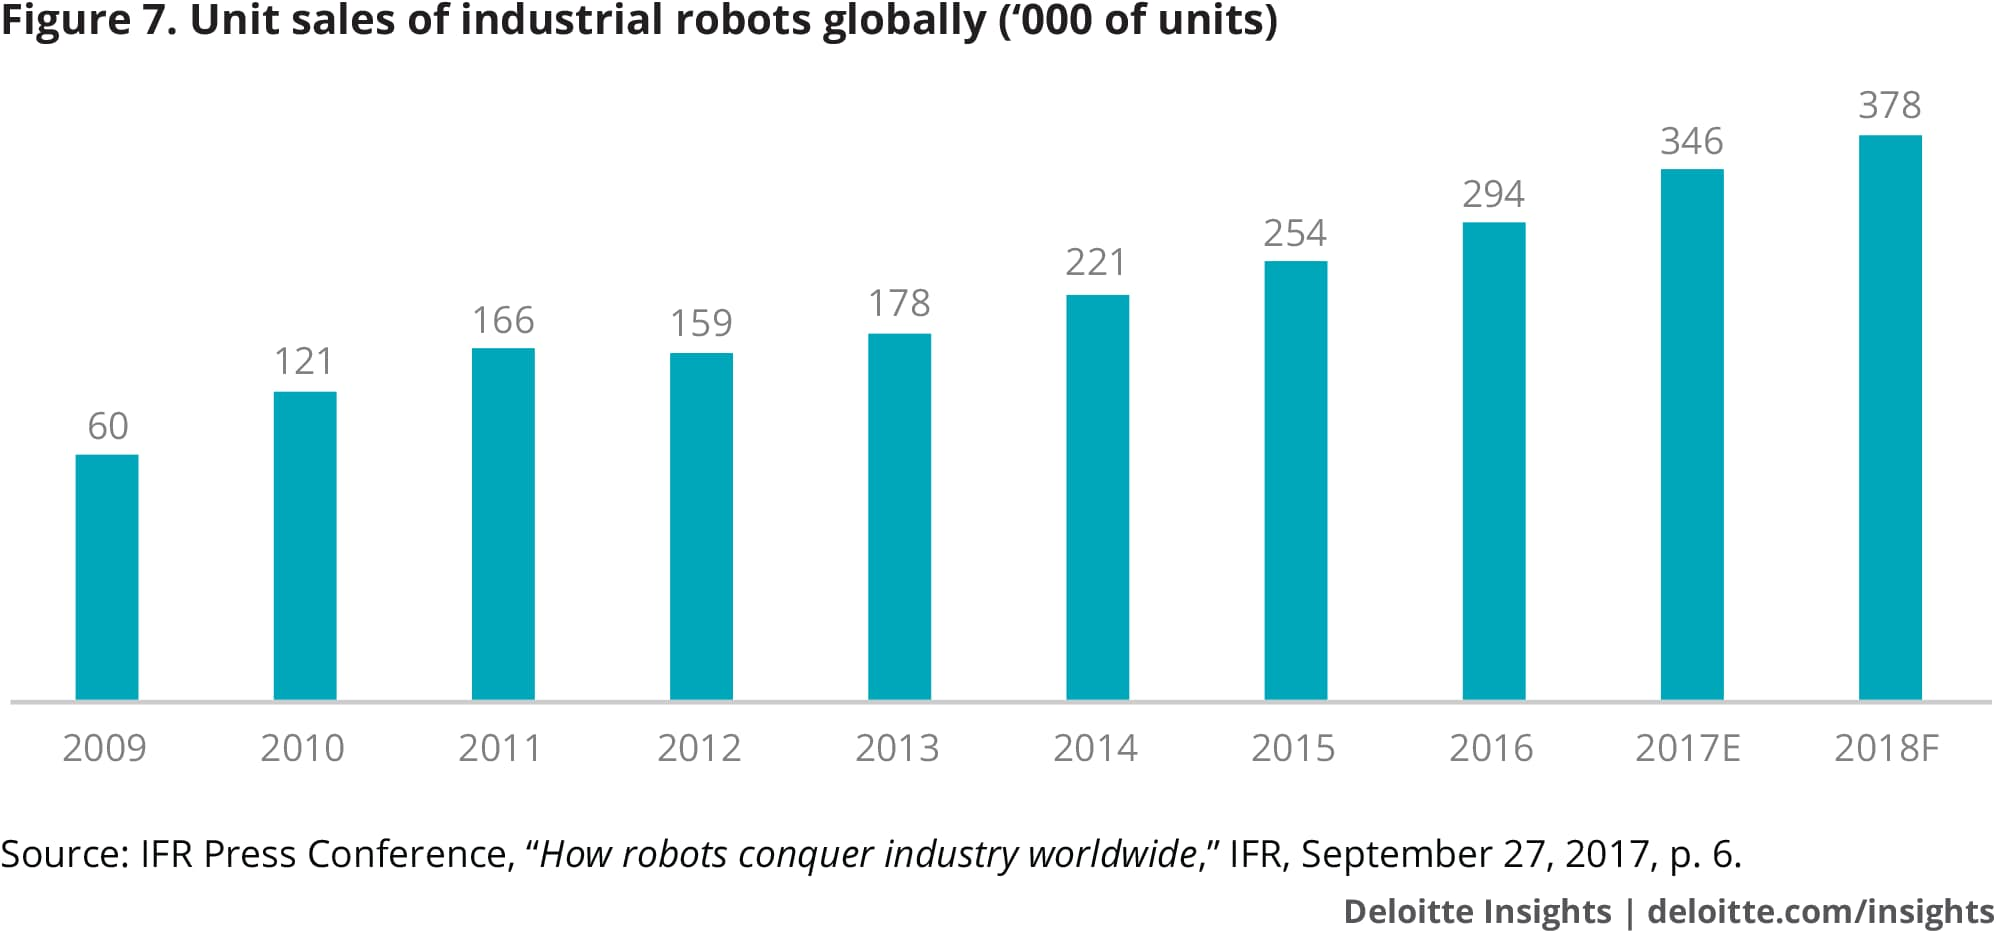 Unit sales of industrial robots globally ('000 of units)